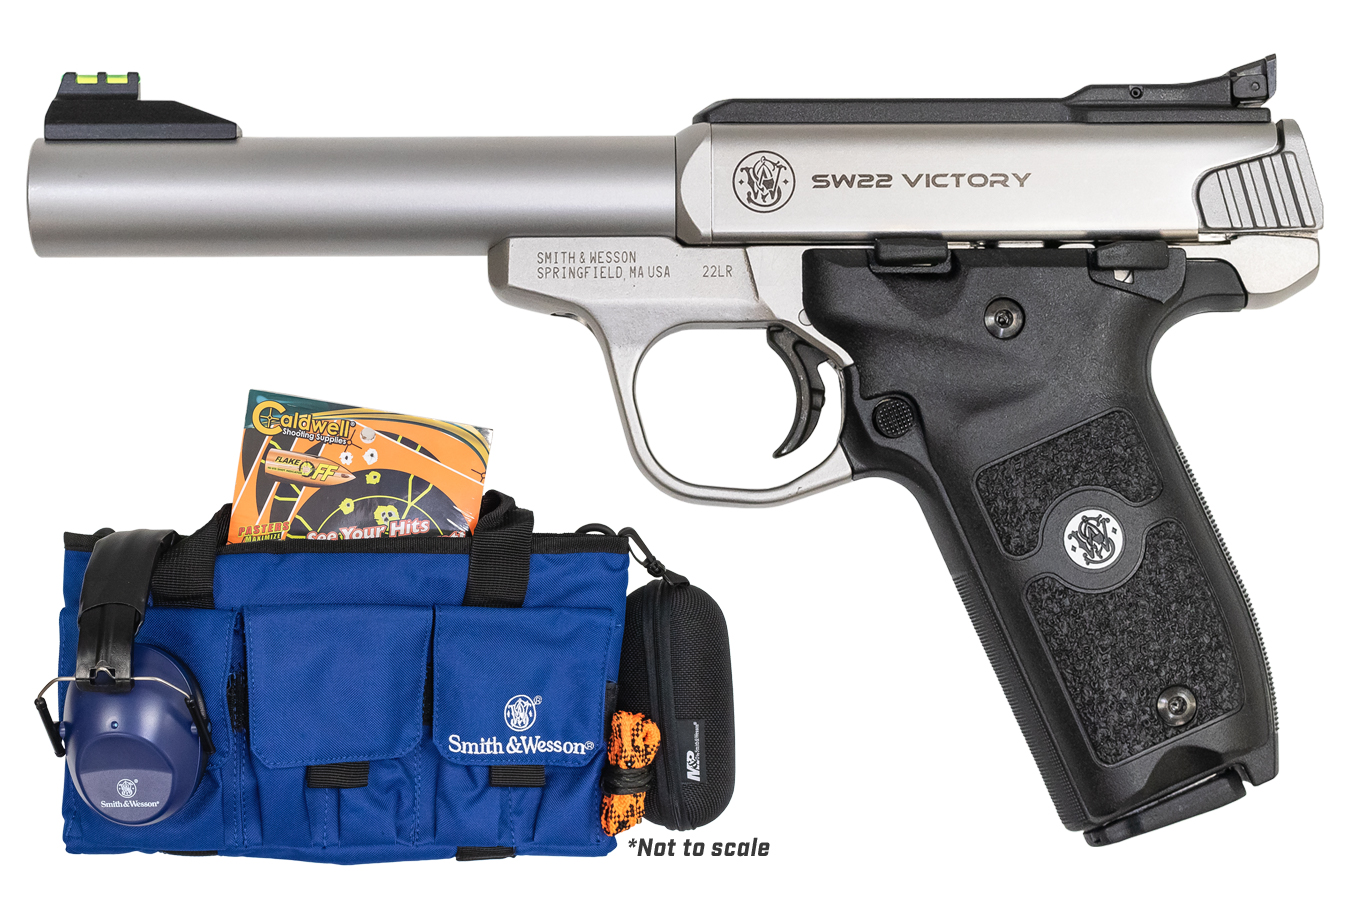 No. 1 Best Selling: SMITH AND WESSON SW22 VICTORY RANGE PACKAGES 22 LR